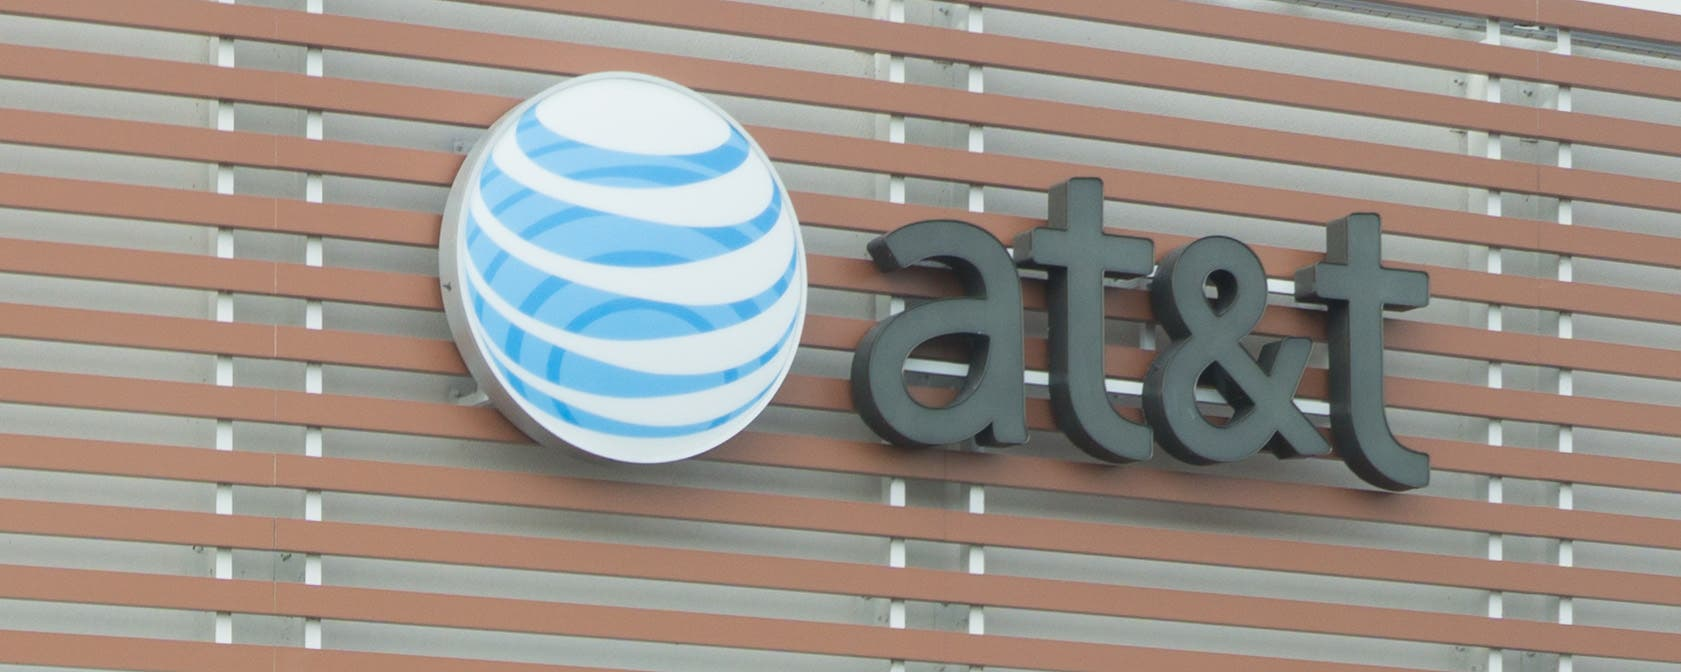 Price Hike Coming for AT&T Unlimited Plans